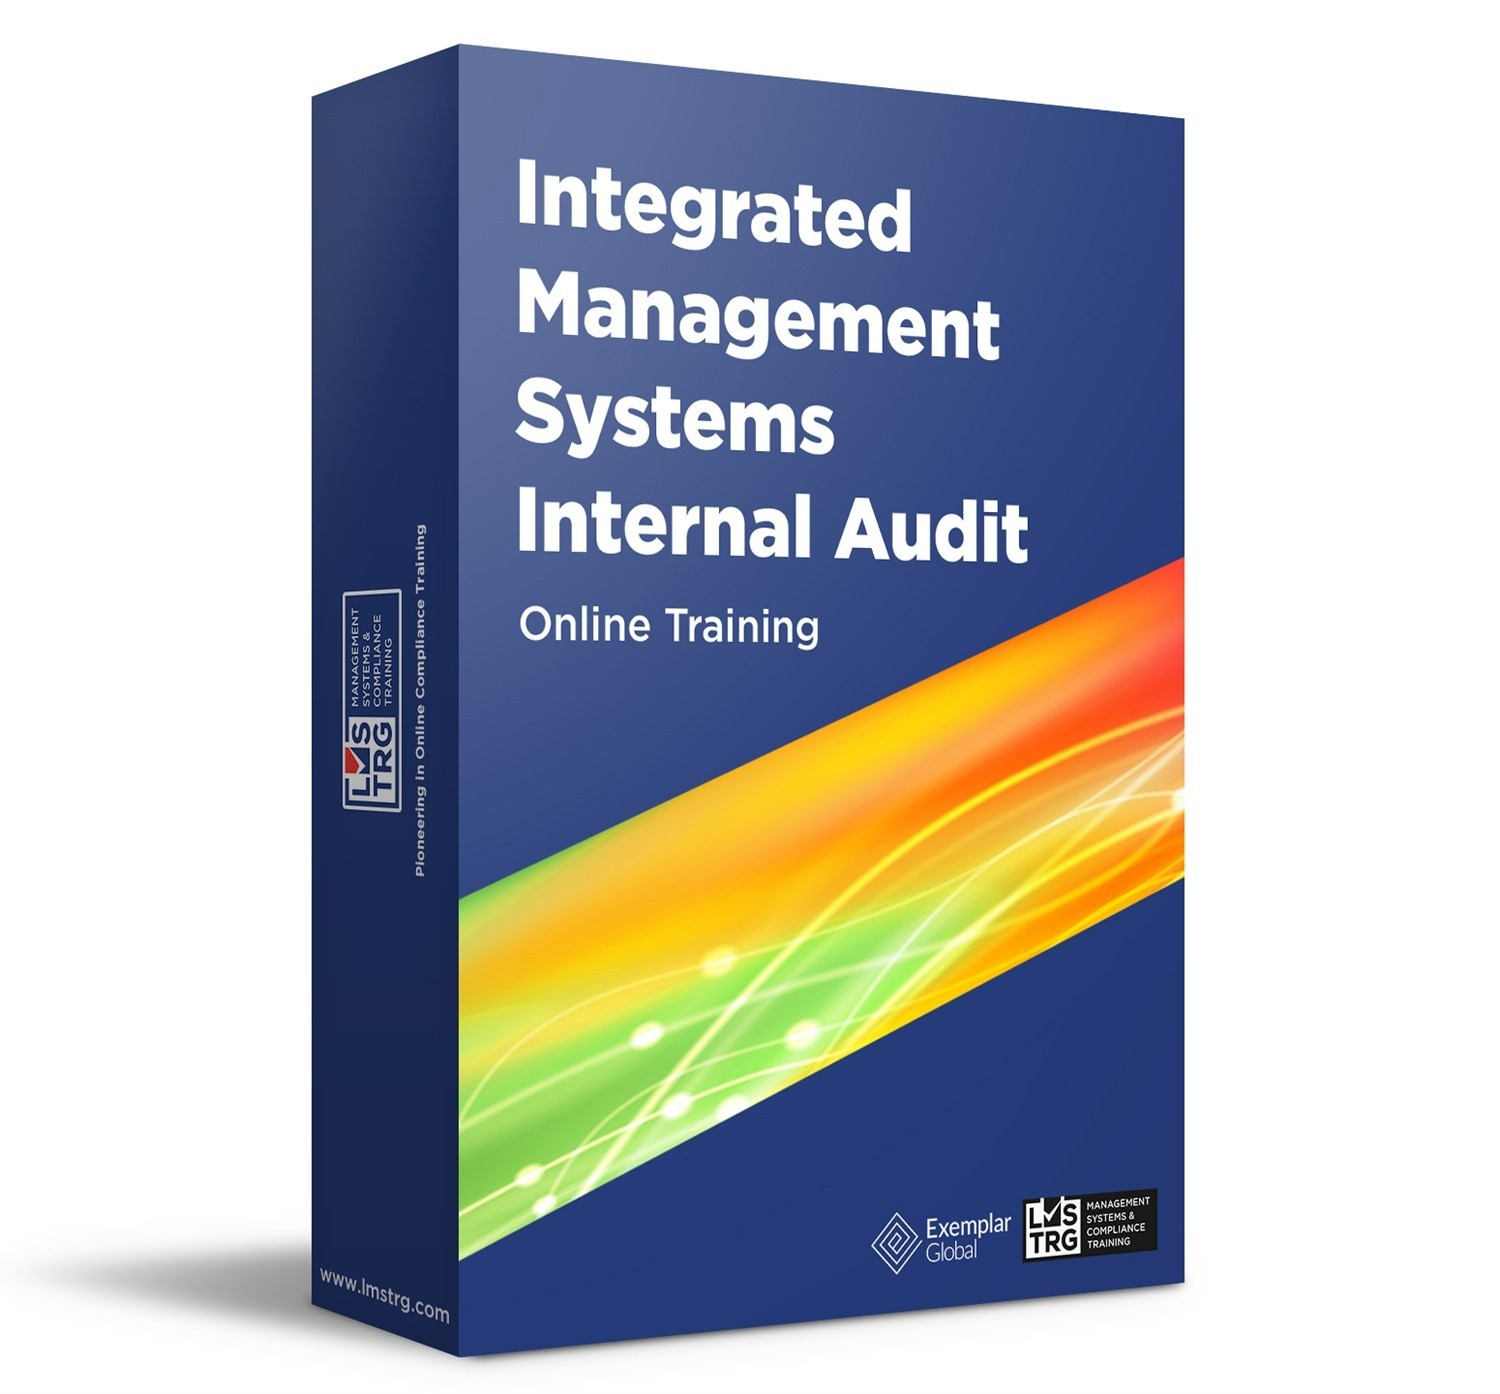 Integrated Management Systems (IMS) Internal Auditor ISO Online Training